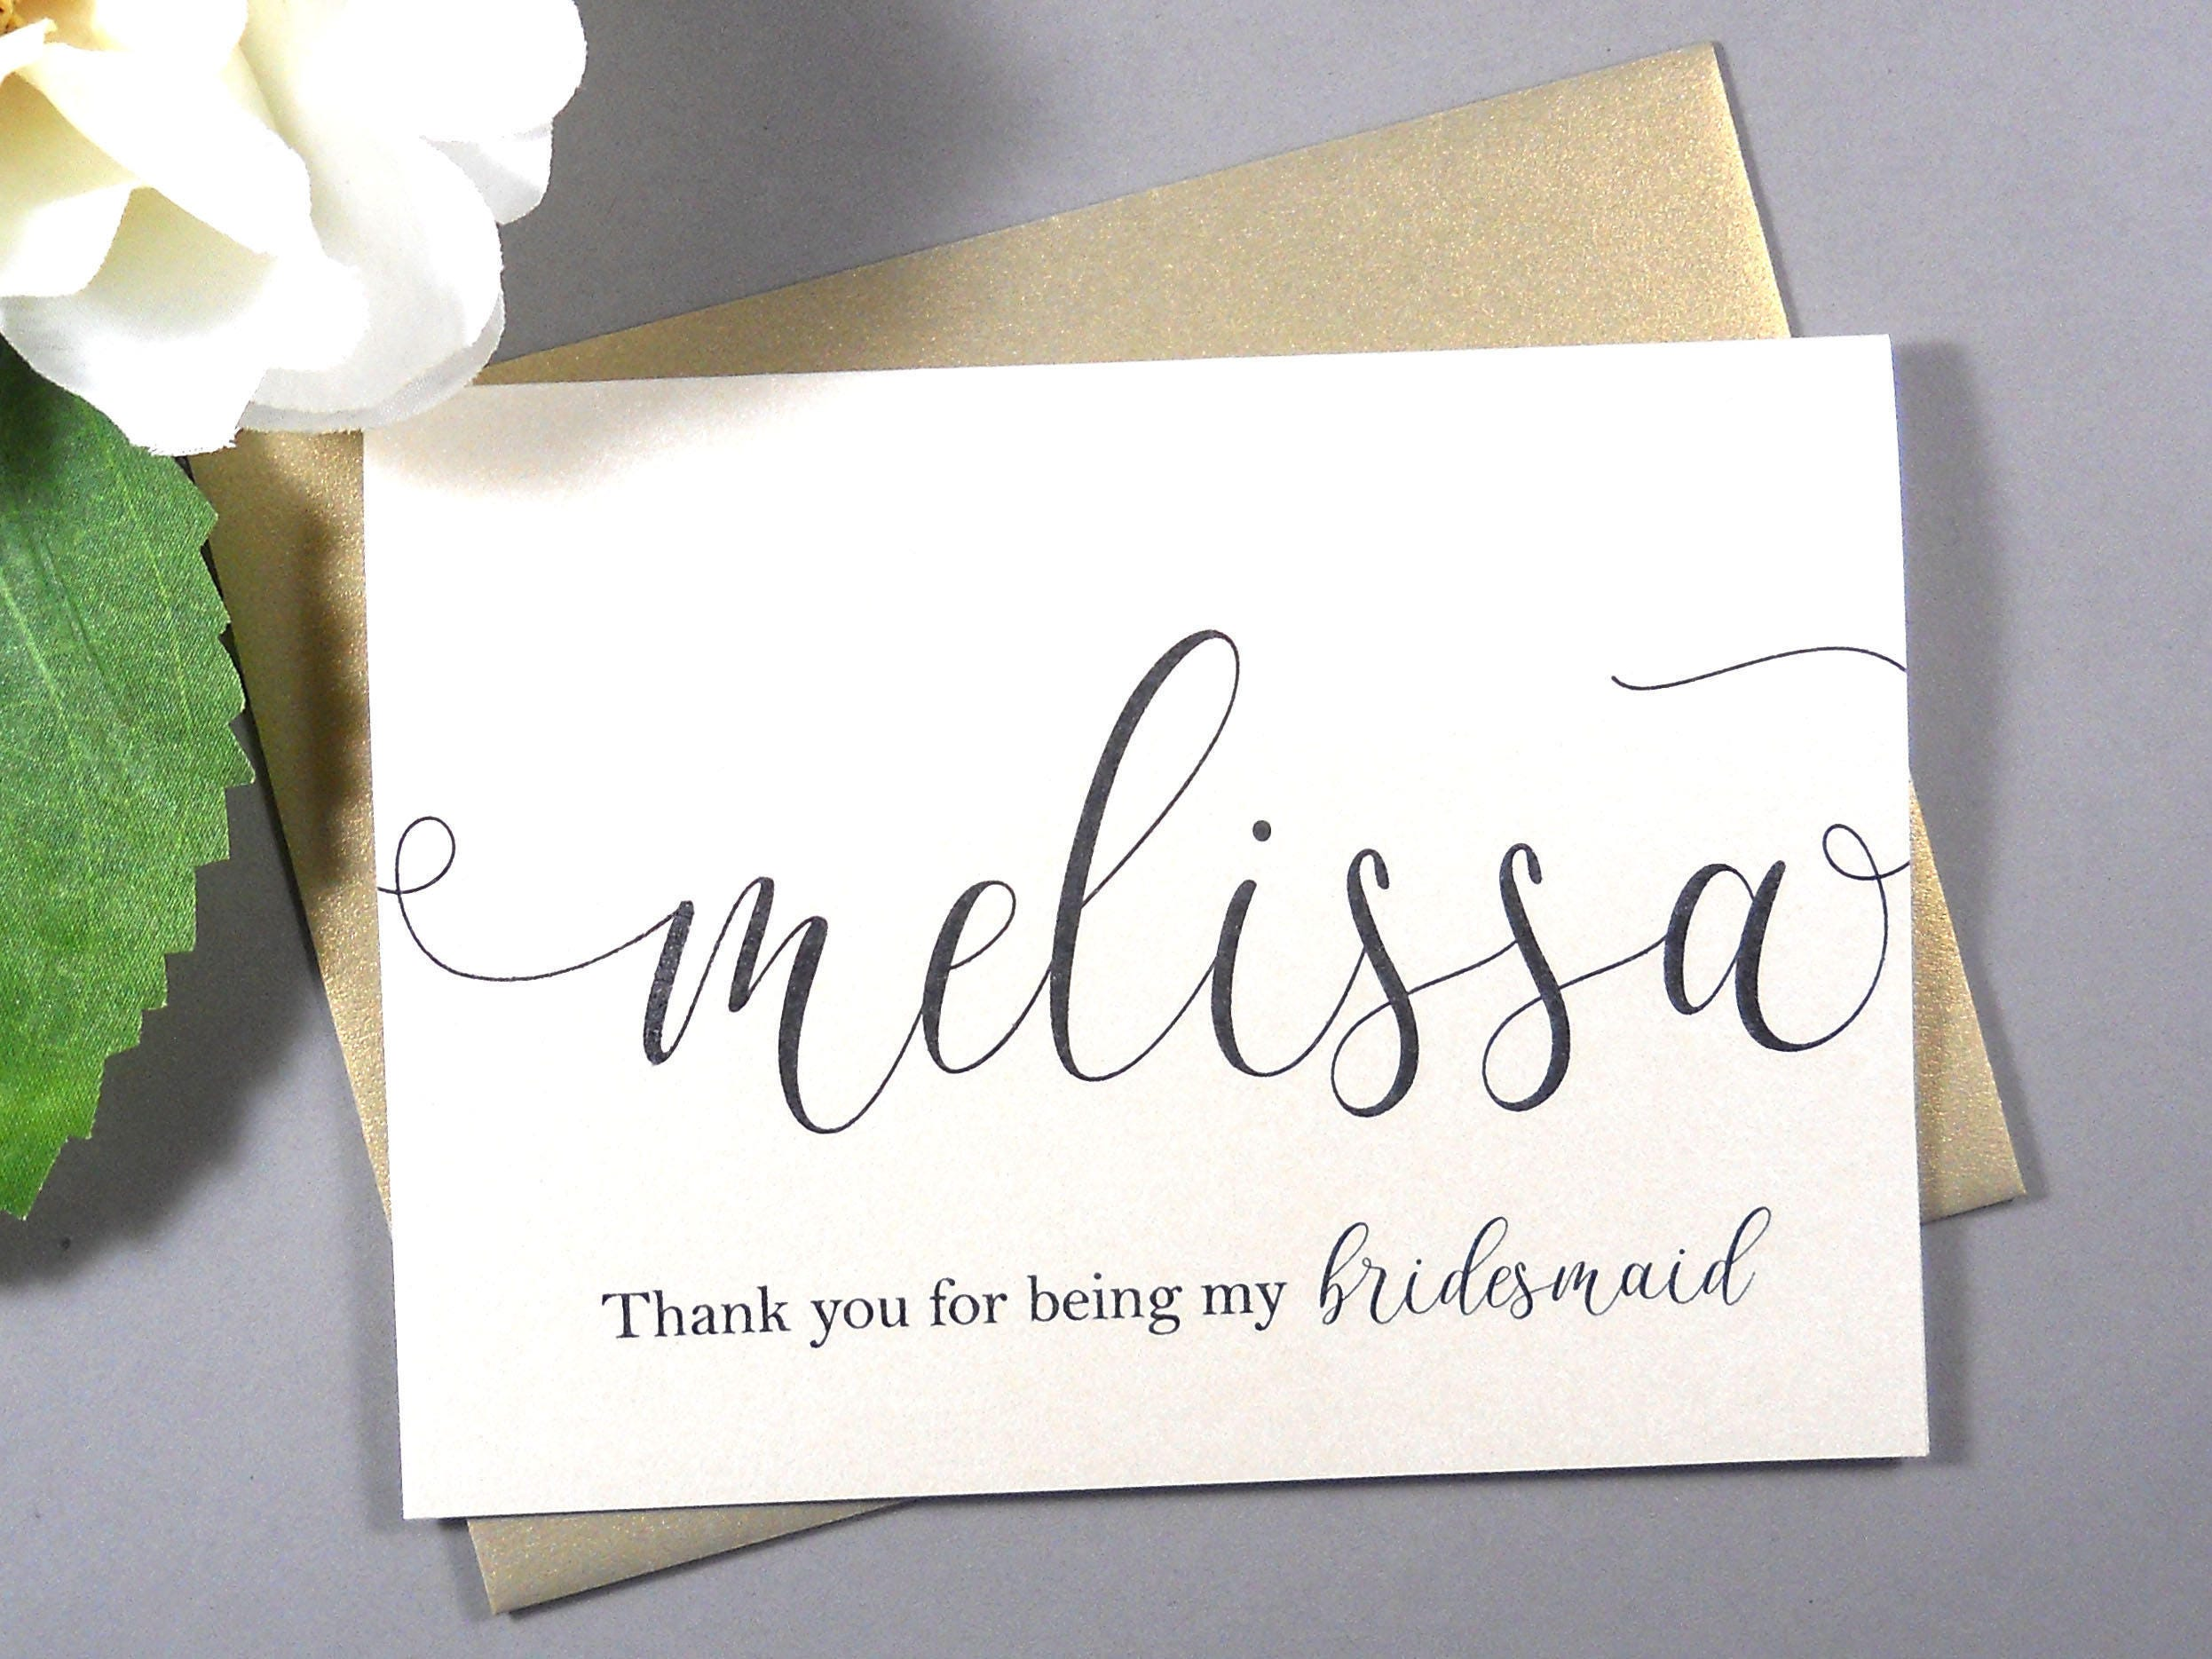 Shimmer Card Thank You For Being My Bridesmaid Card Etsy